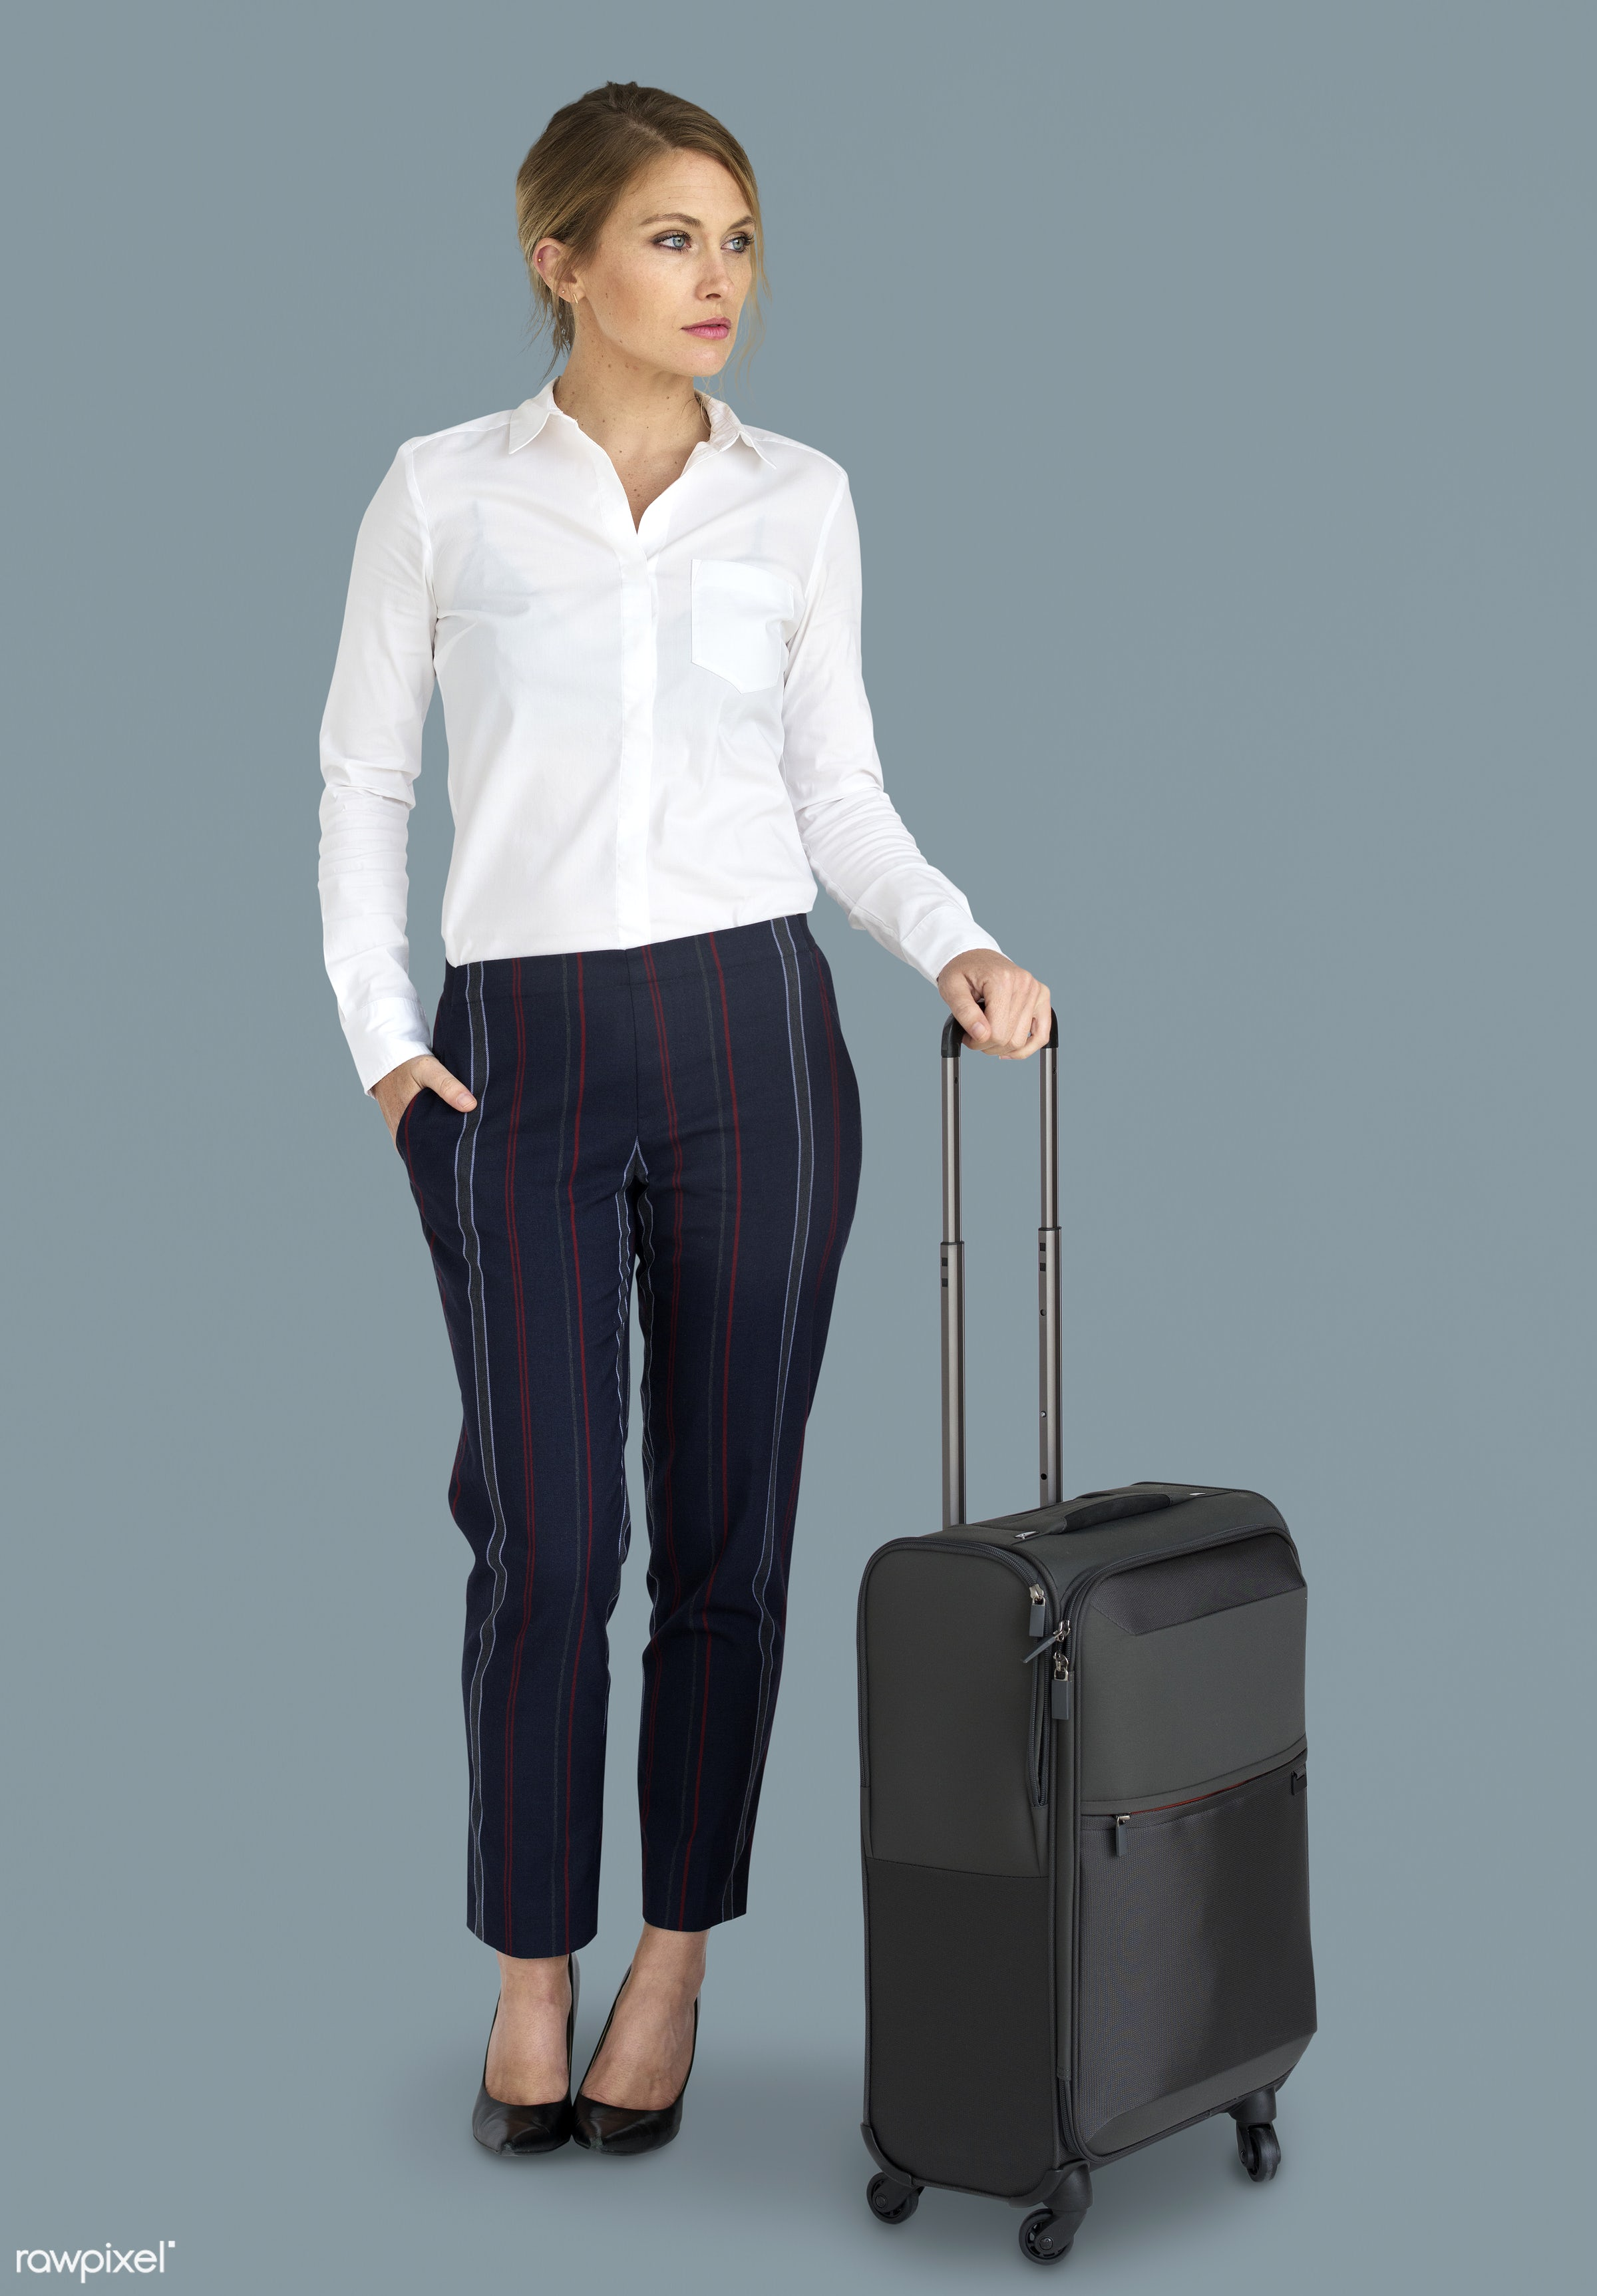 studio, face, person, travel, people, business, grey, trip, man, isolated, suitcase, male, traveler, businesswoman, business...